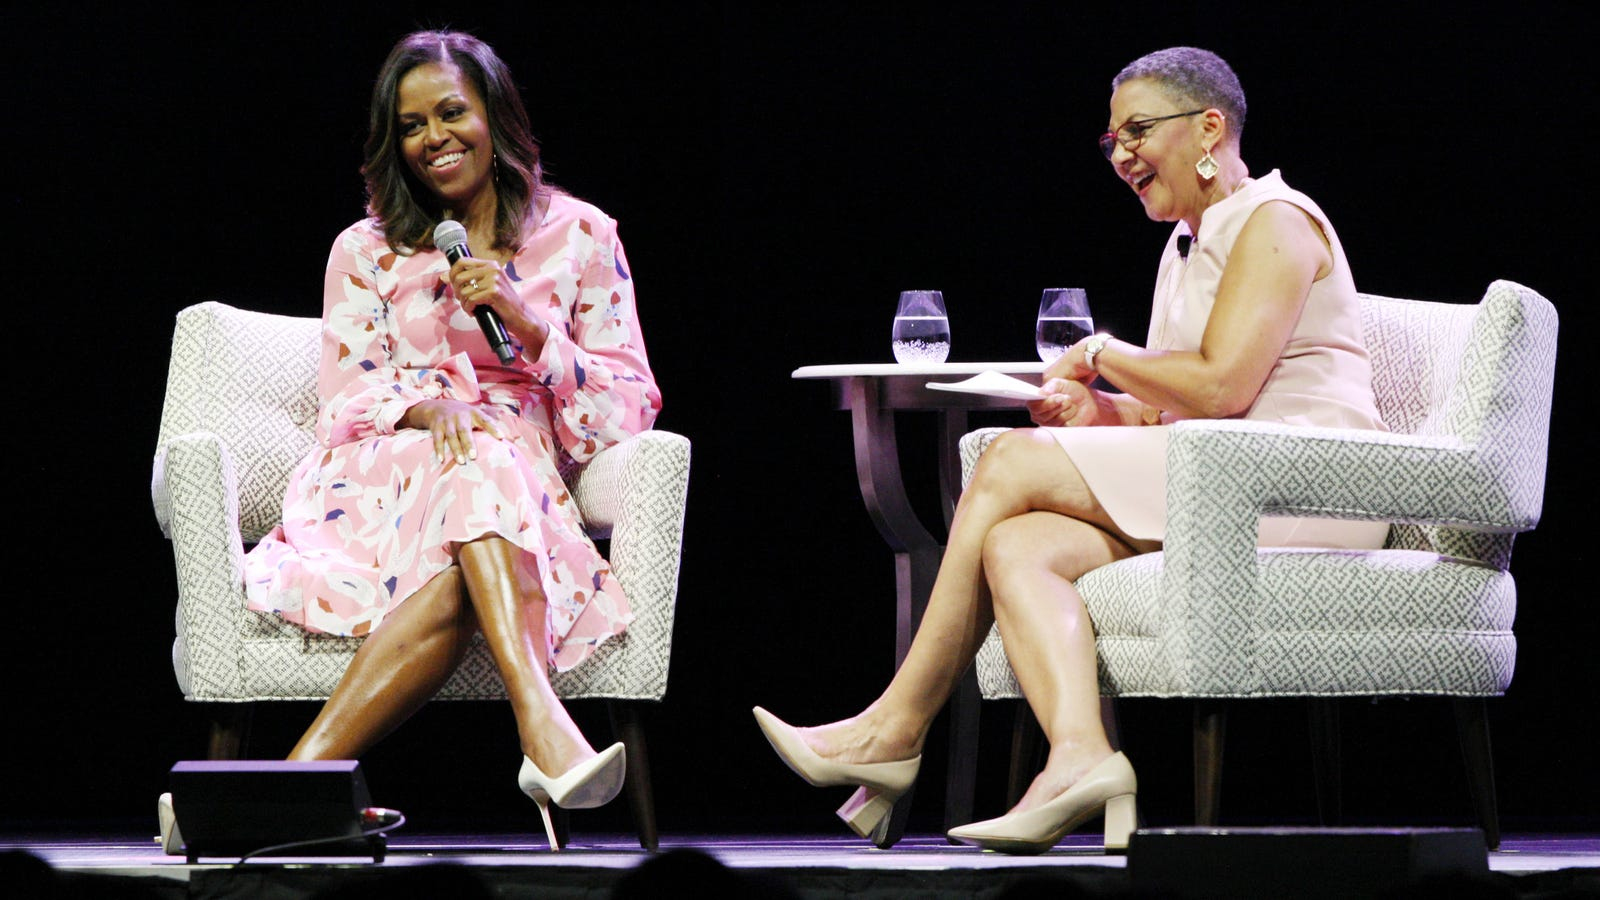 Michelle Obama Says Racism She Faced As First Lady 'Cut Me the Deepest'